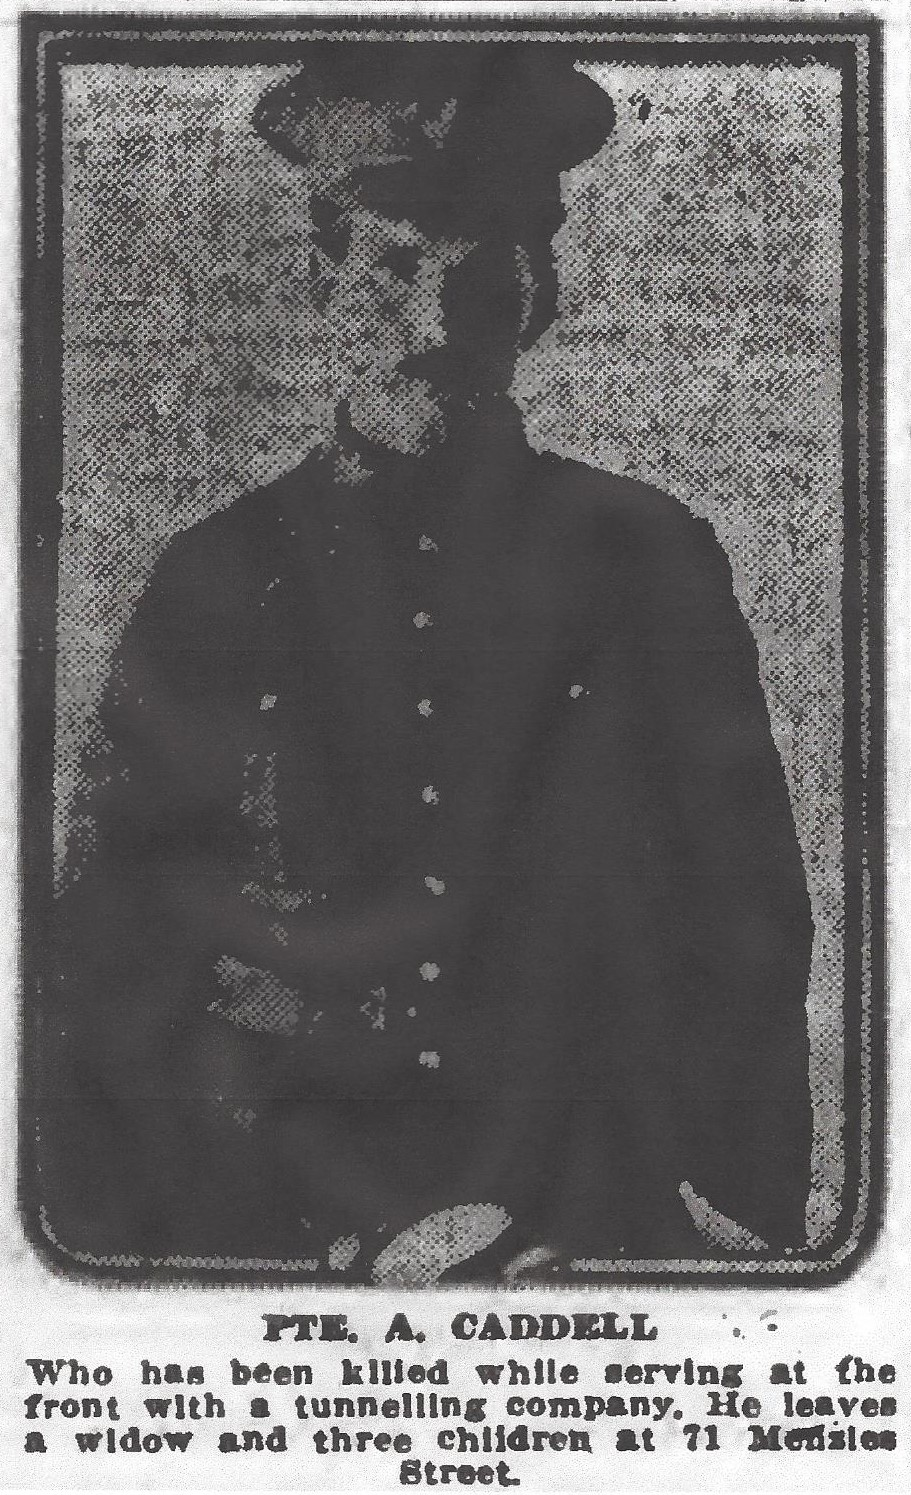 Newspaper Clipping– From the Daily Colonist of May 1, 1917. Image taken from web address of http://archive.org/stream/dailycolonist59y122uvic#page/n0/mode/1up